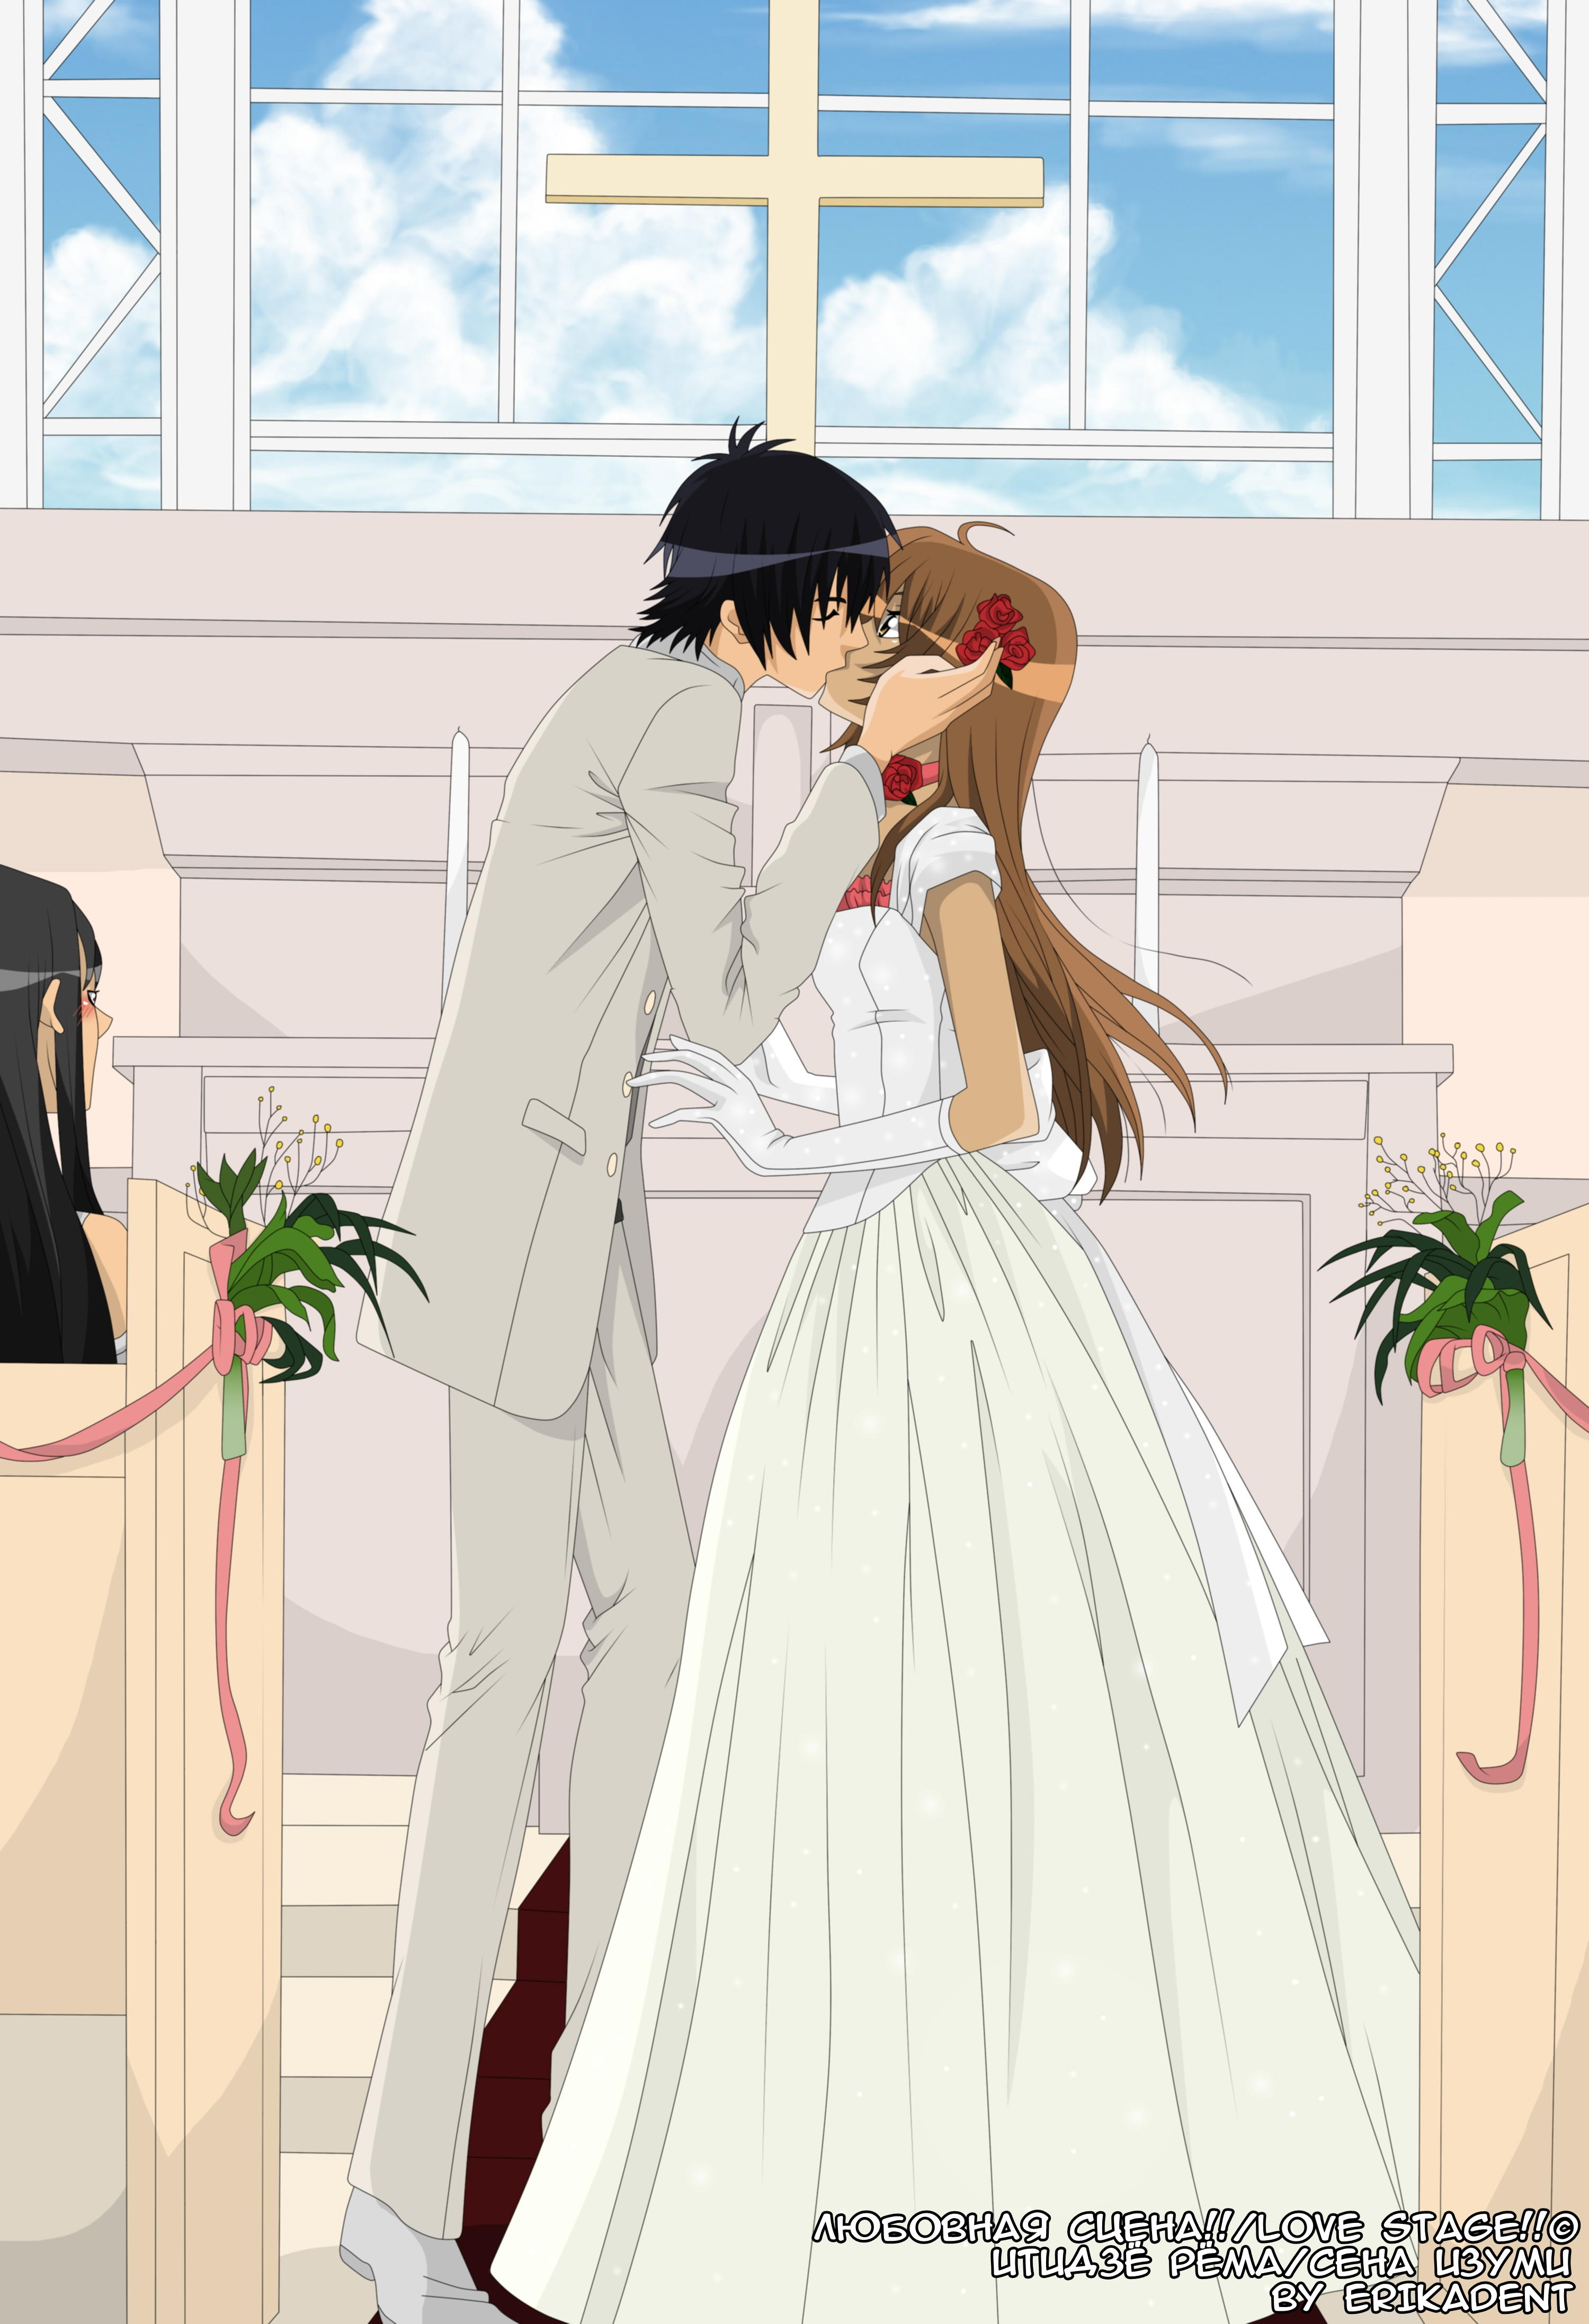 photo: Pictures Bride Pictures Anime Girl